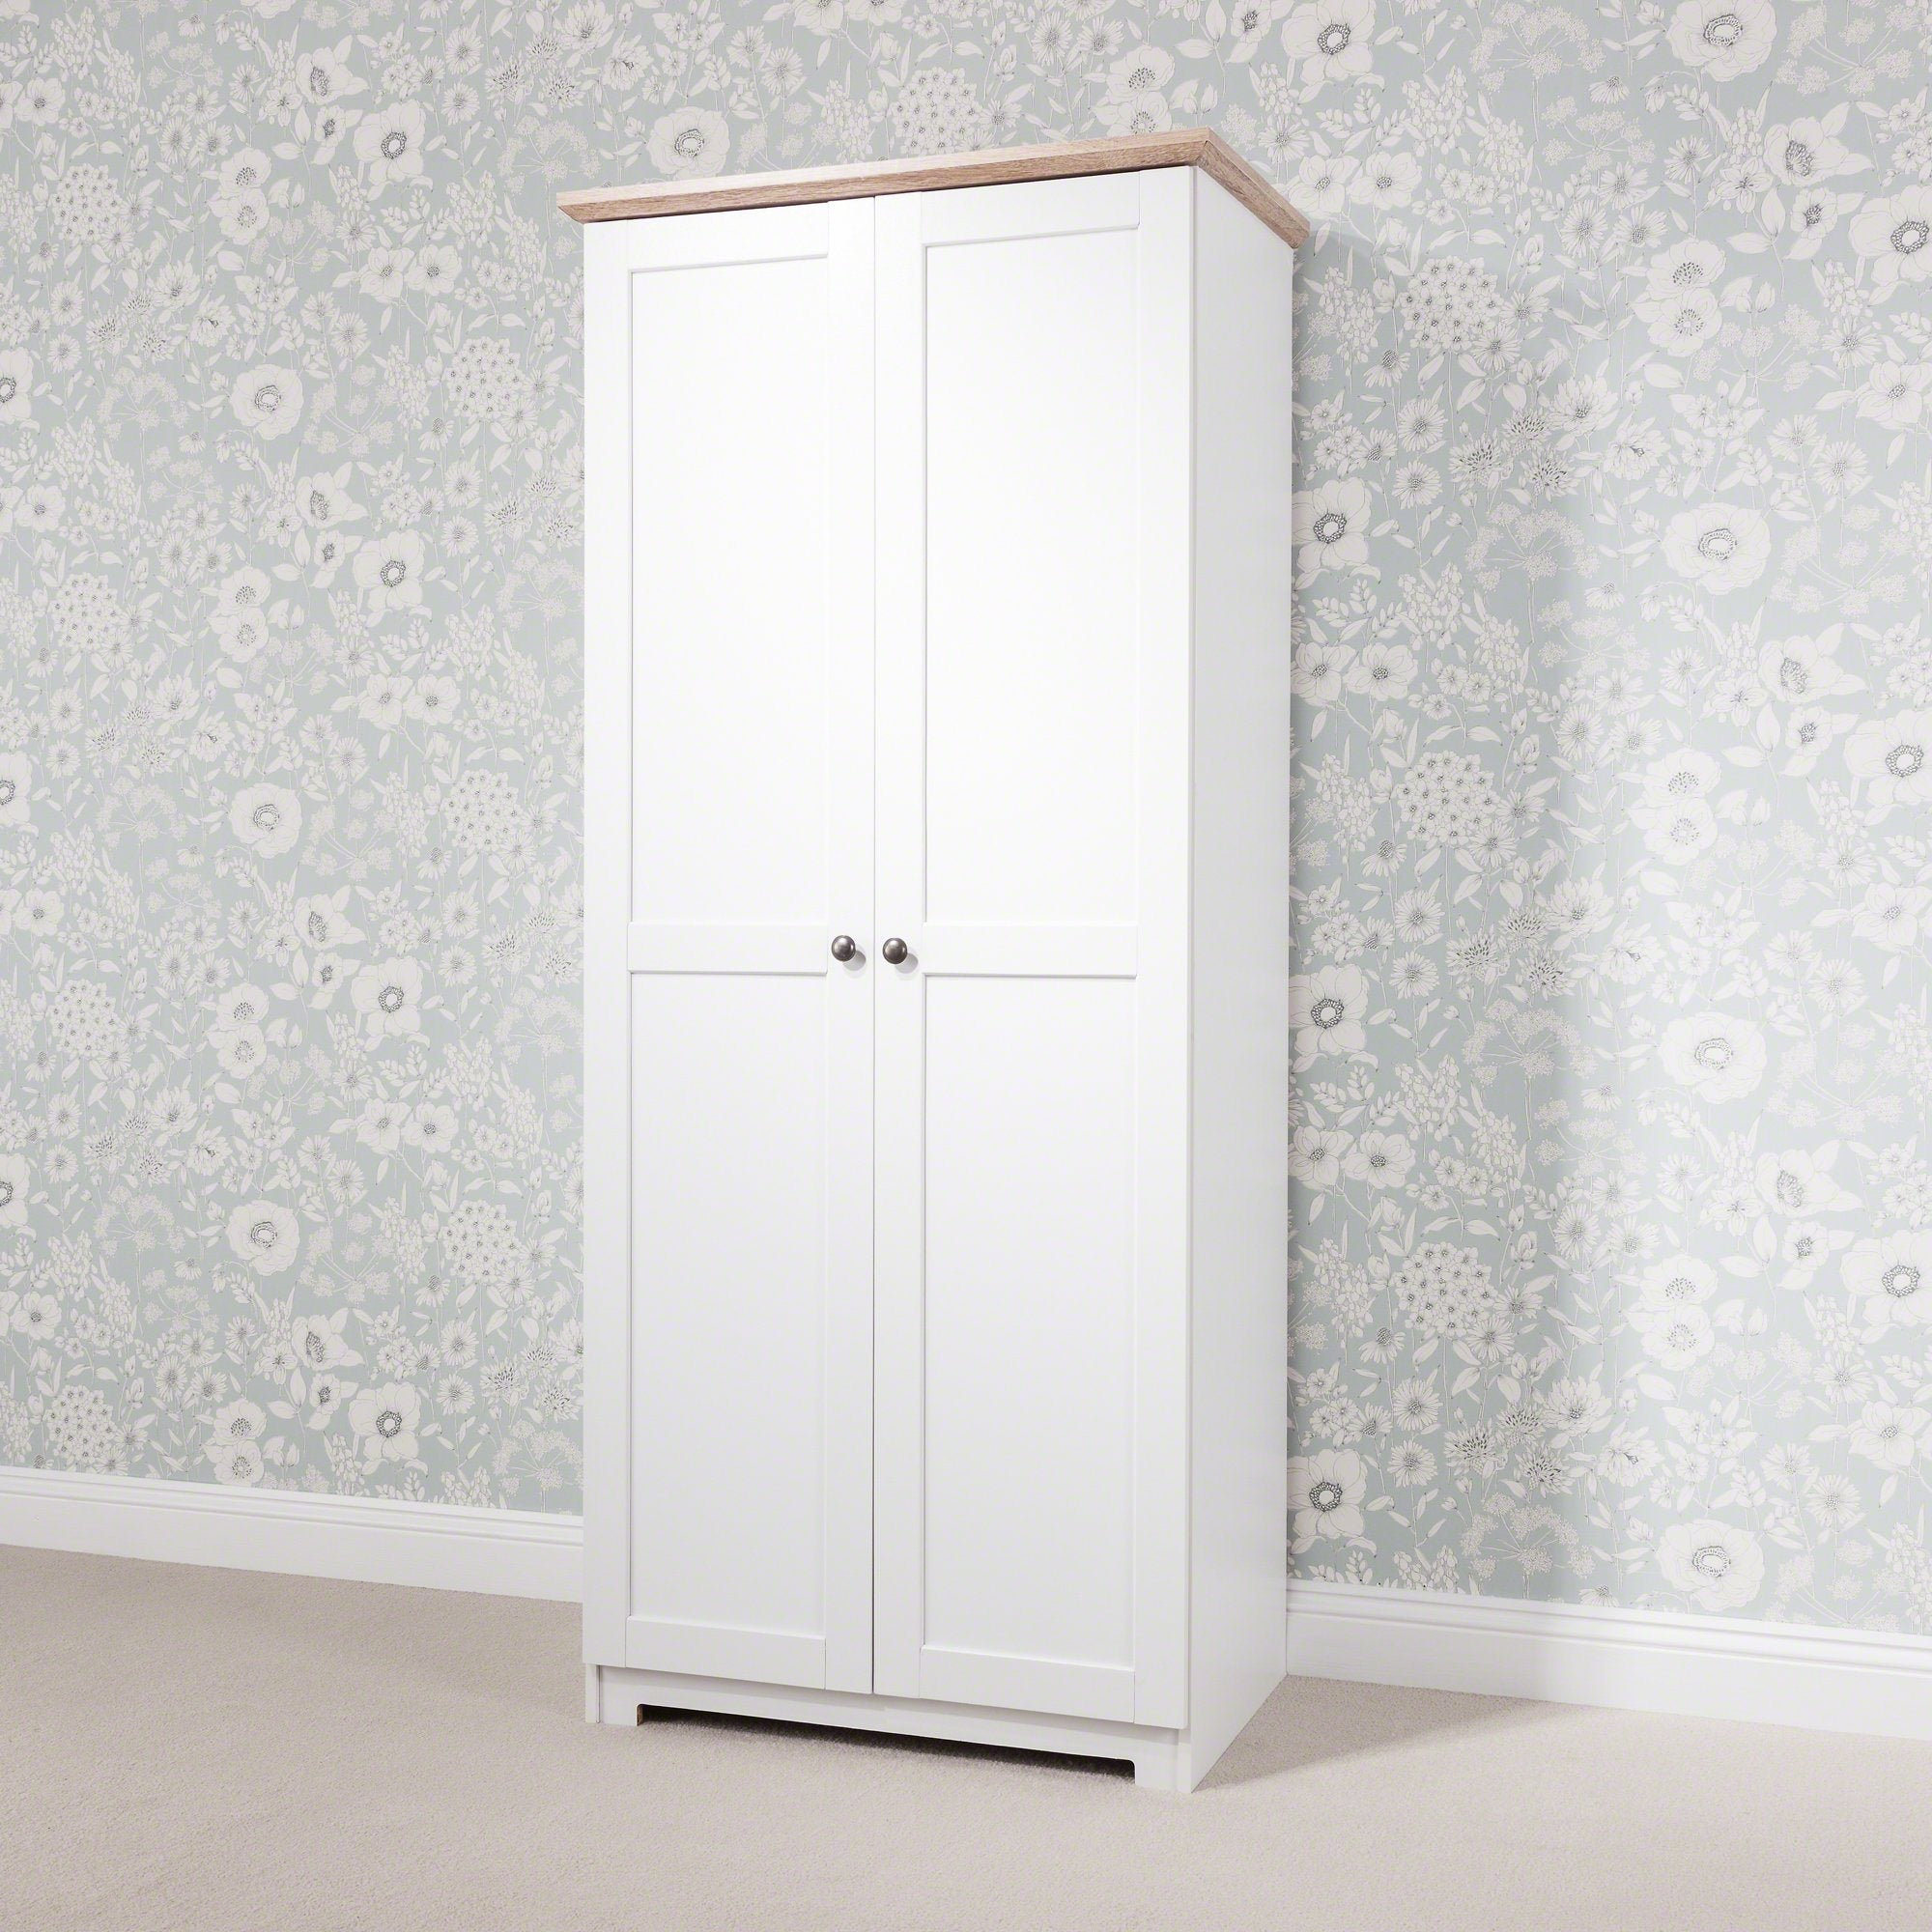 White Wardrobe 2 Doors - Laura James